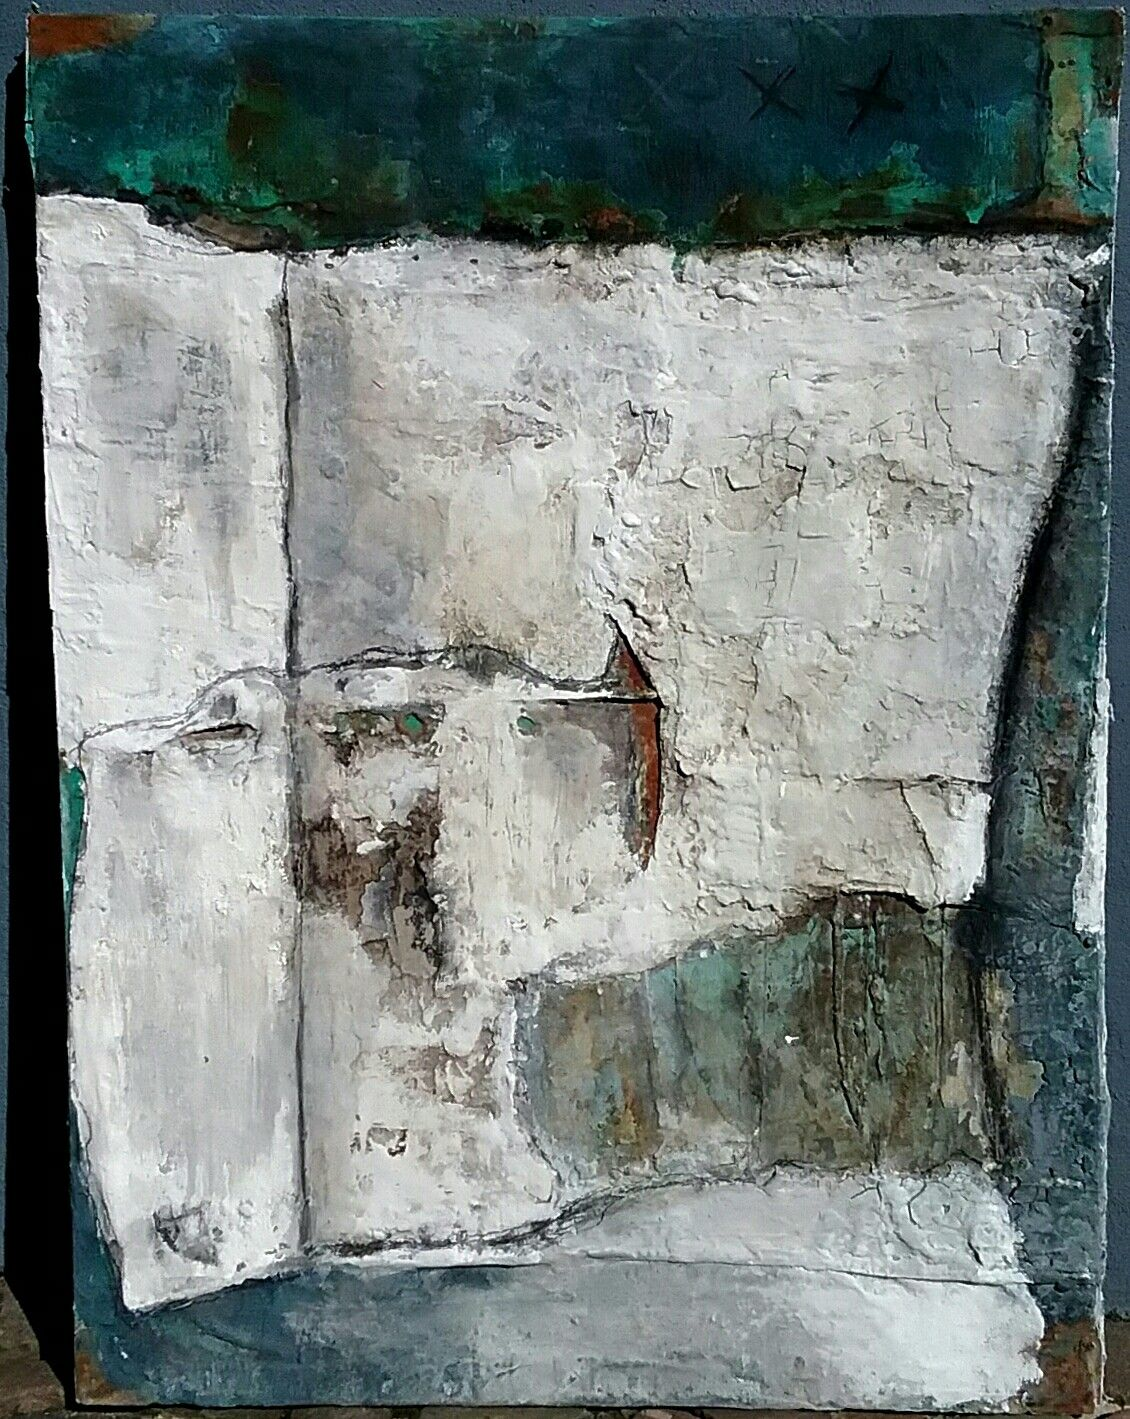 Rost Blau Weiss 100x120 Encaustics Abstracts Arte Abstracto Pintar